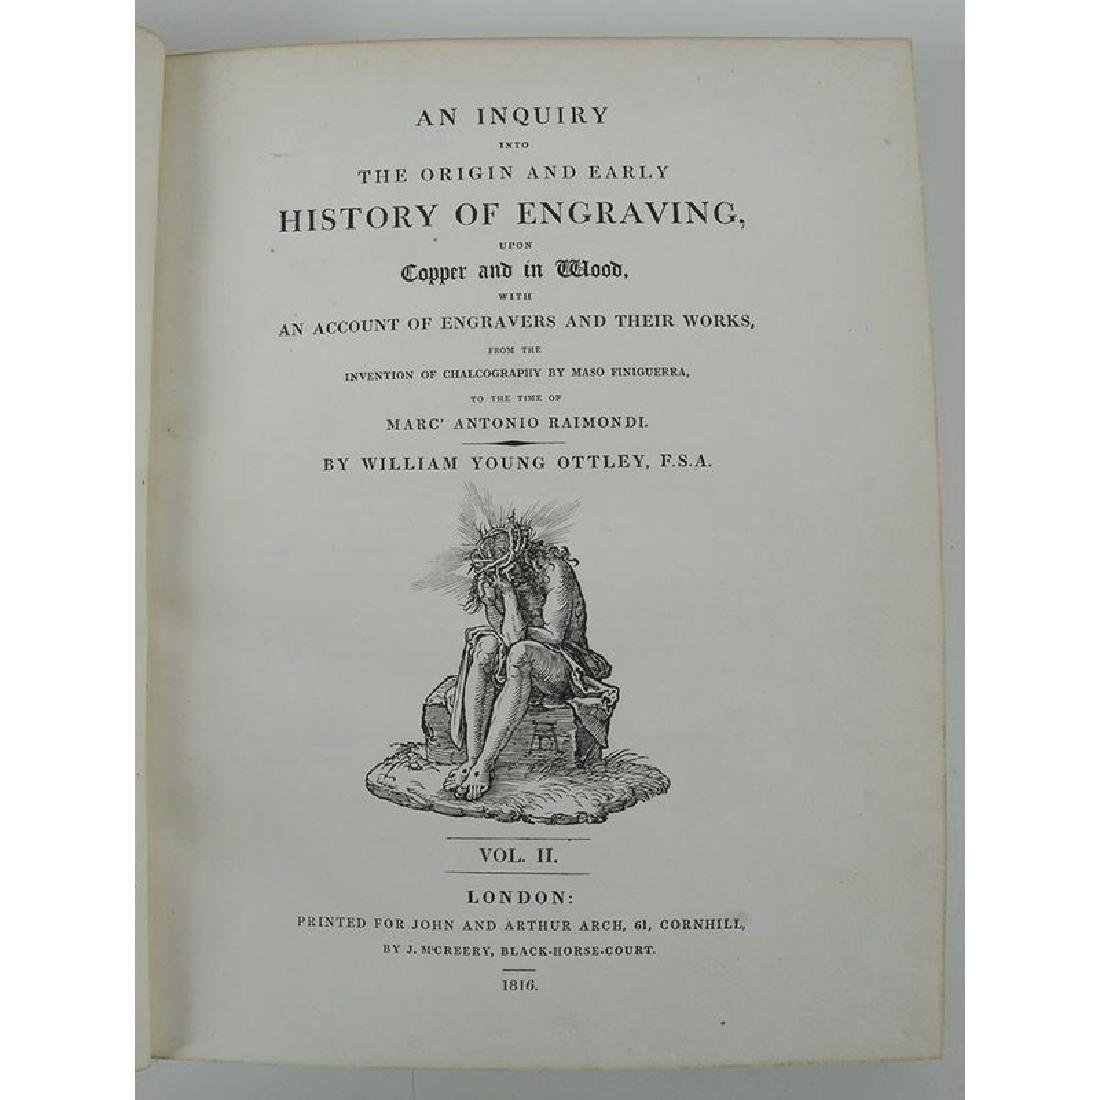 The Origin and Early History of Engraving, 1816 - 5